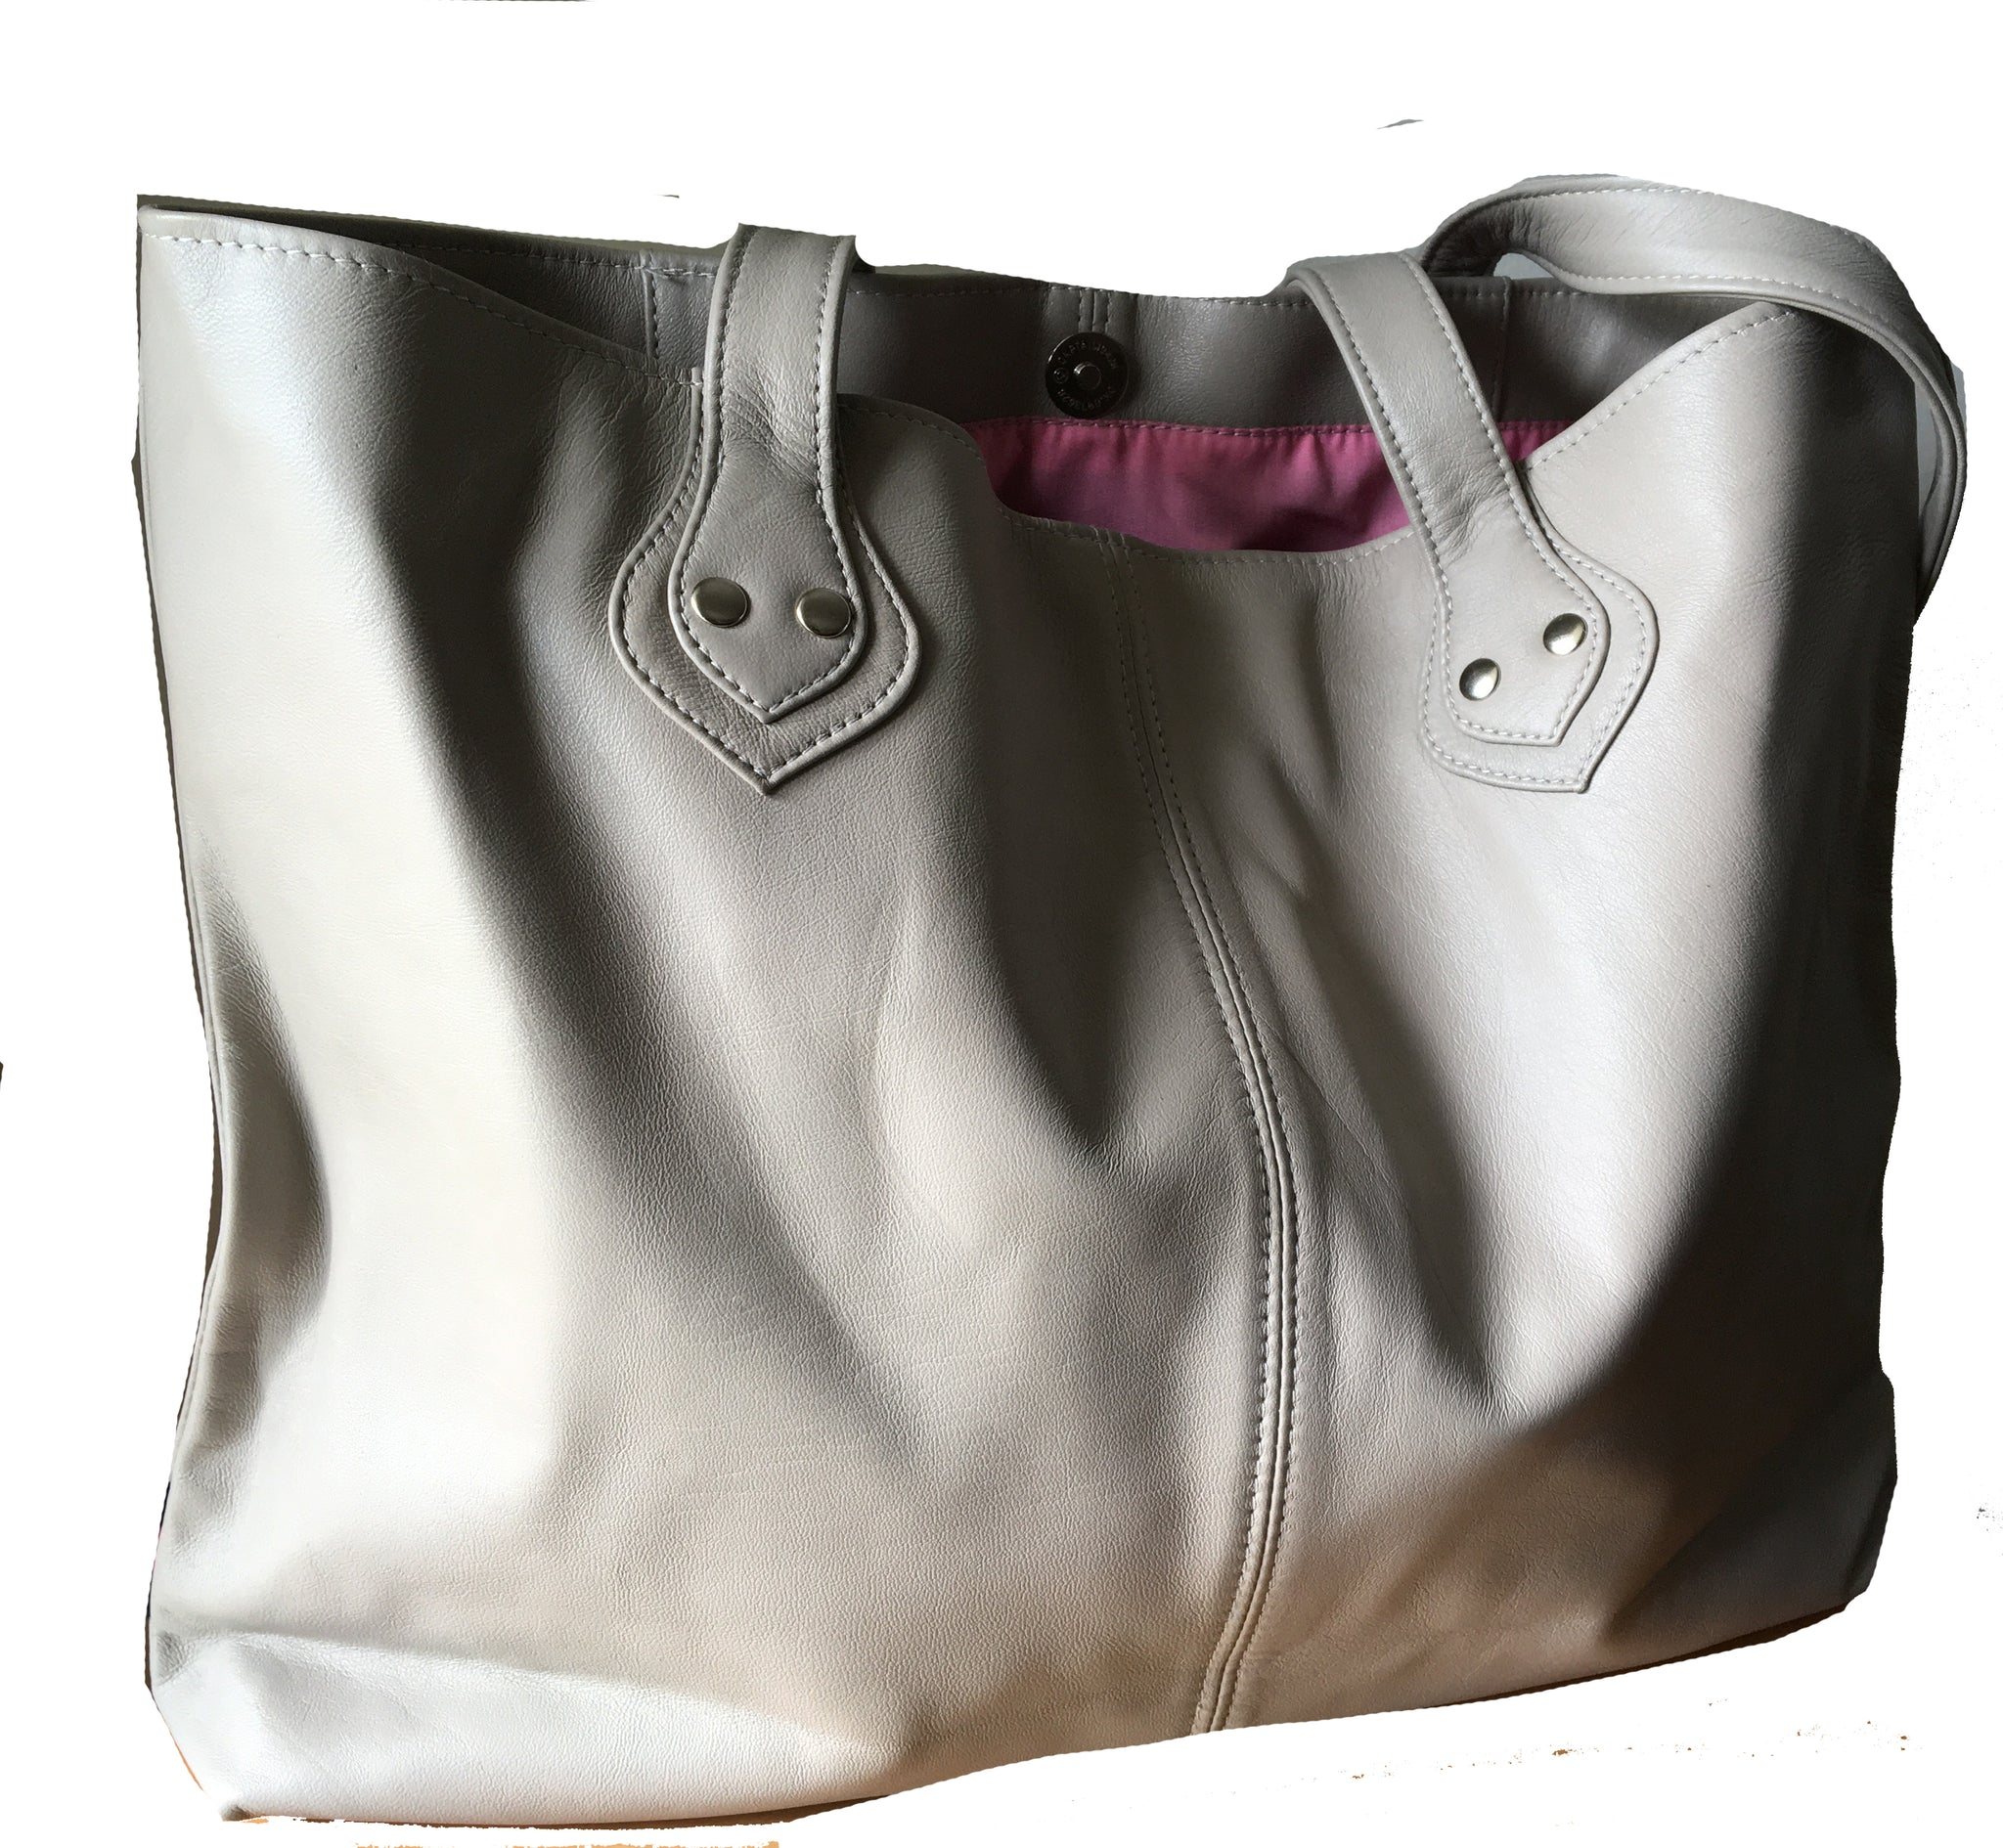 The Short Shopper - Perfect Leather Tote Bag. Quality, shorter,shoulder bag.